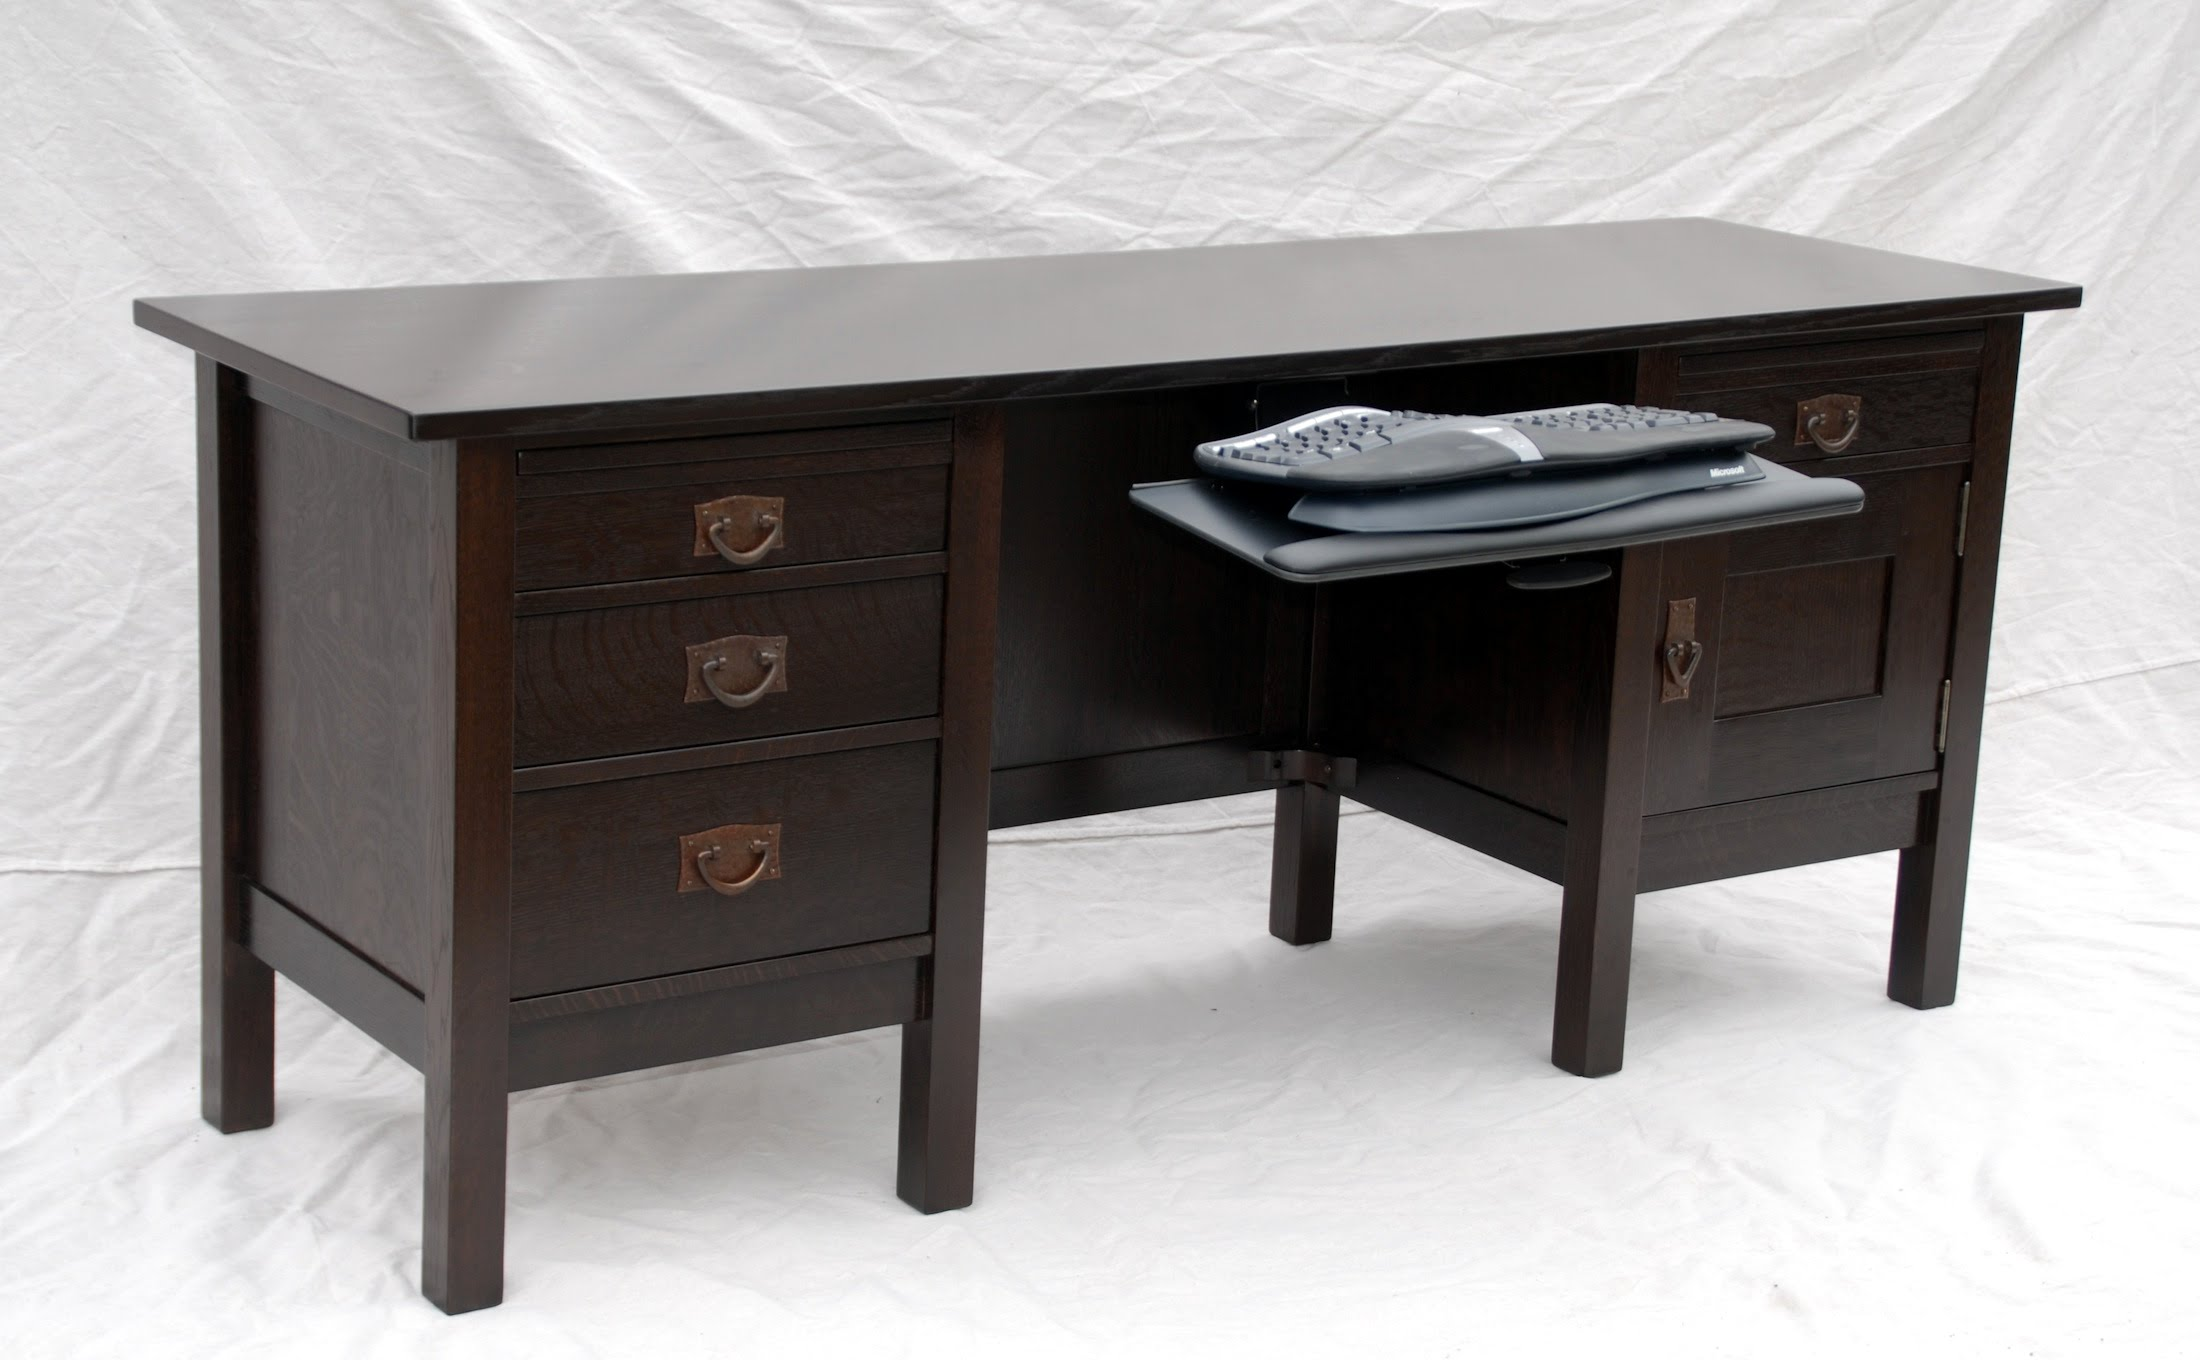 Custom executive desks - Shown With The Tuck Away Keyboard Tray Extended